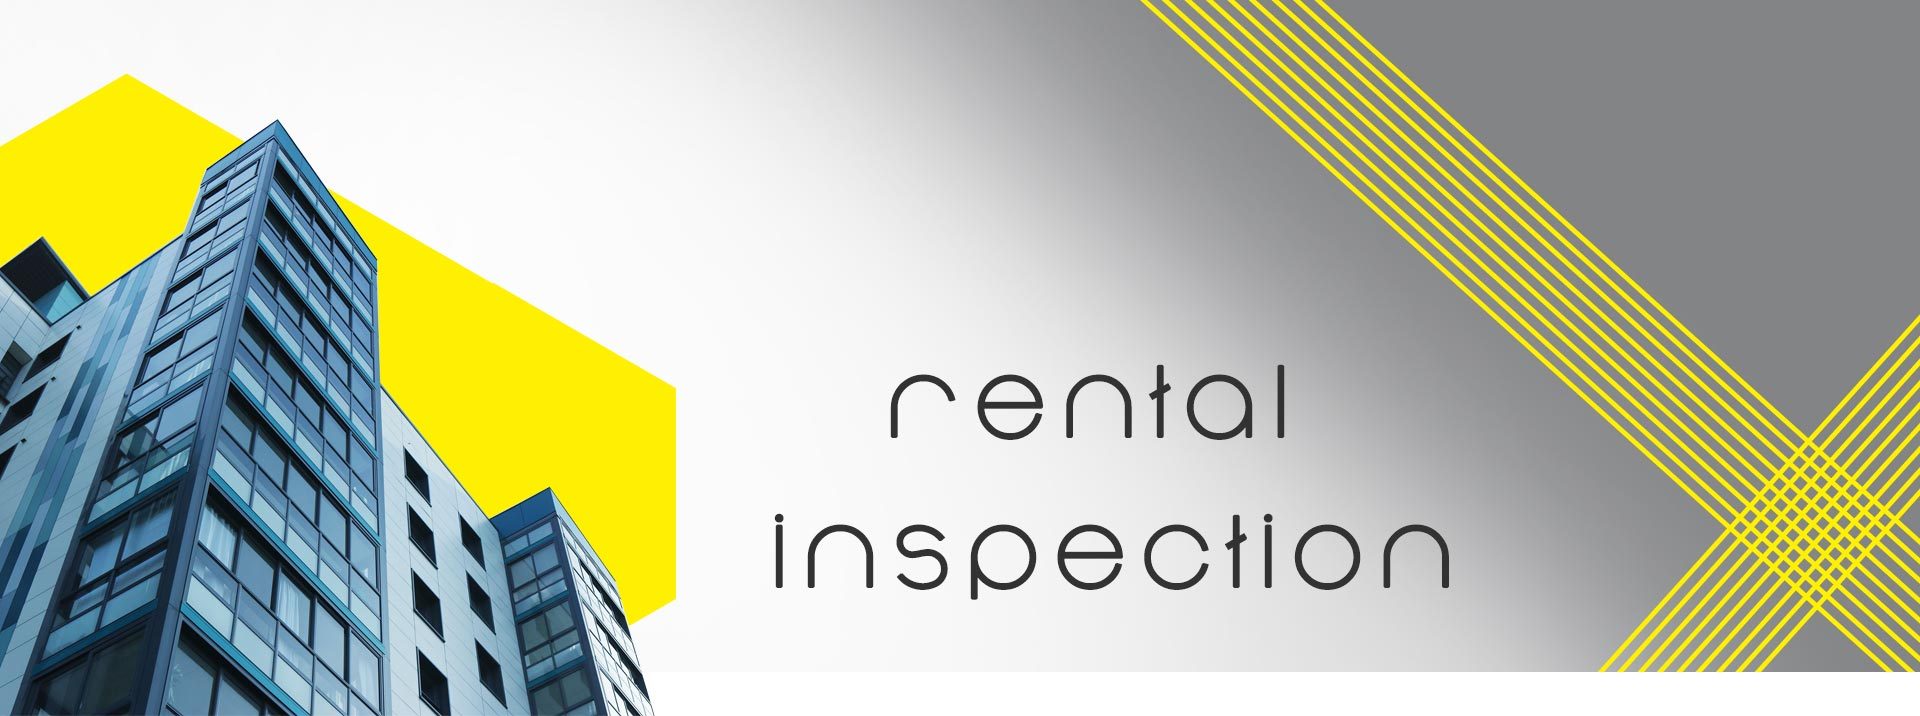 rental-inspection-banner.jpg